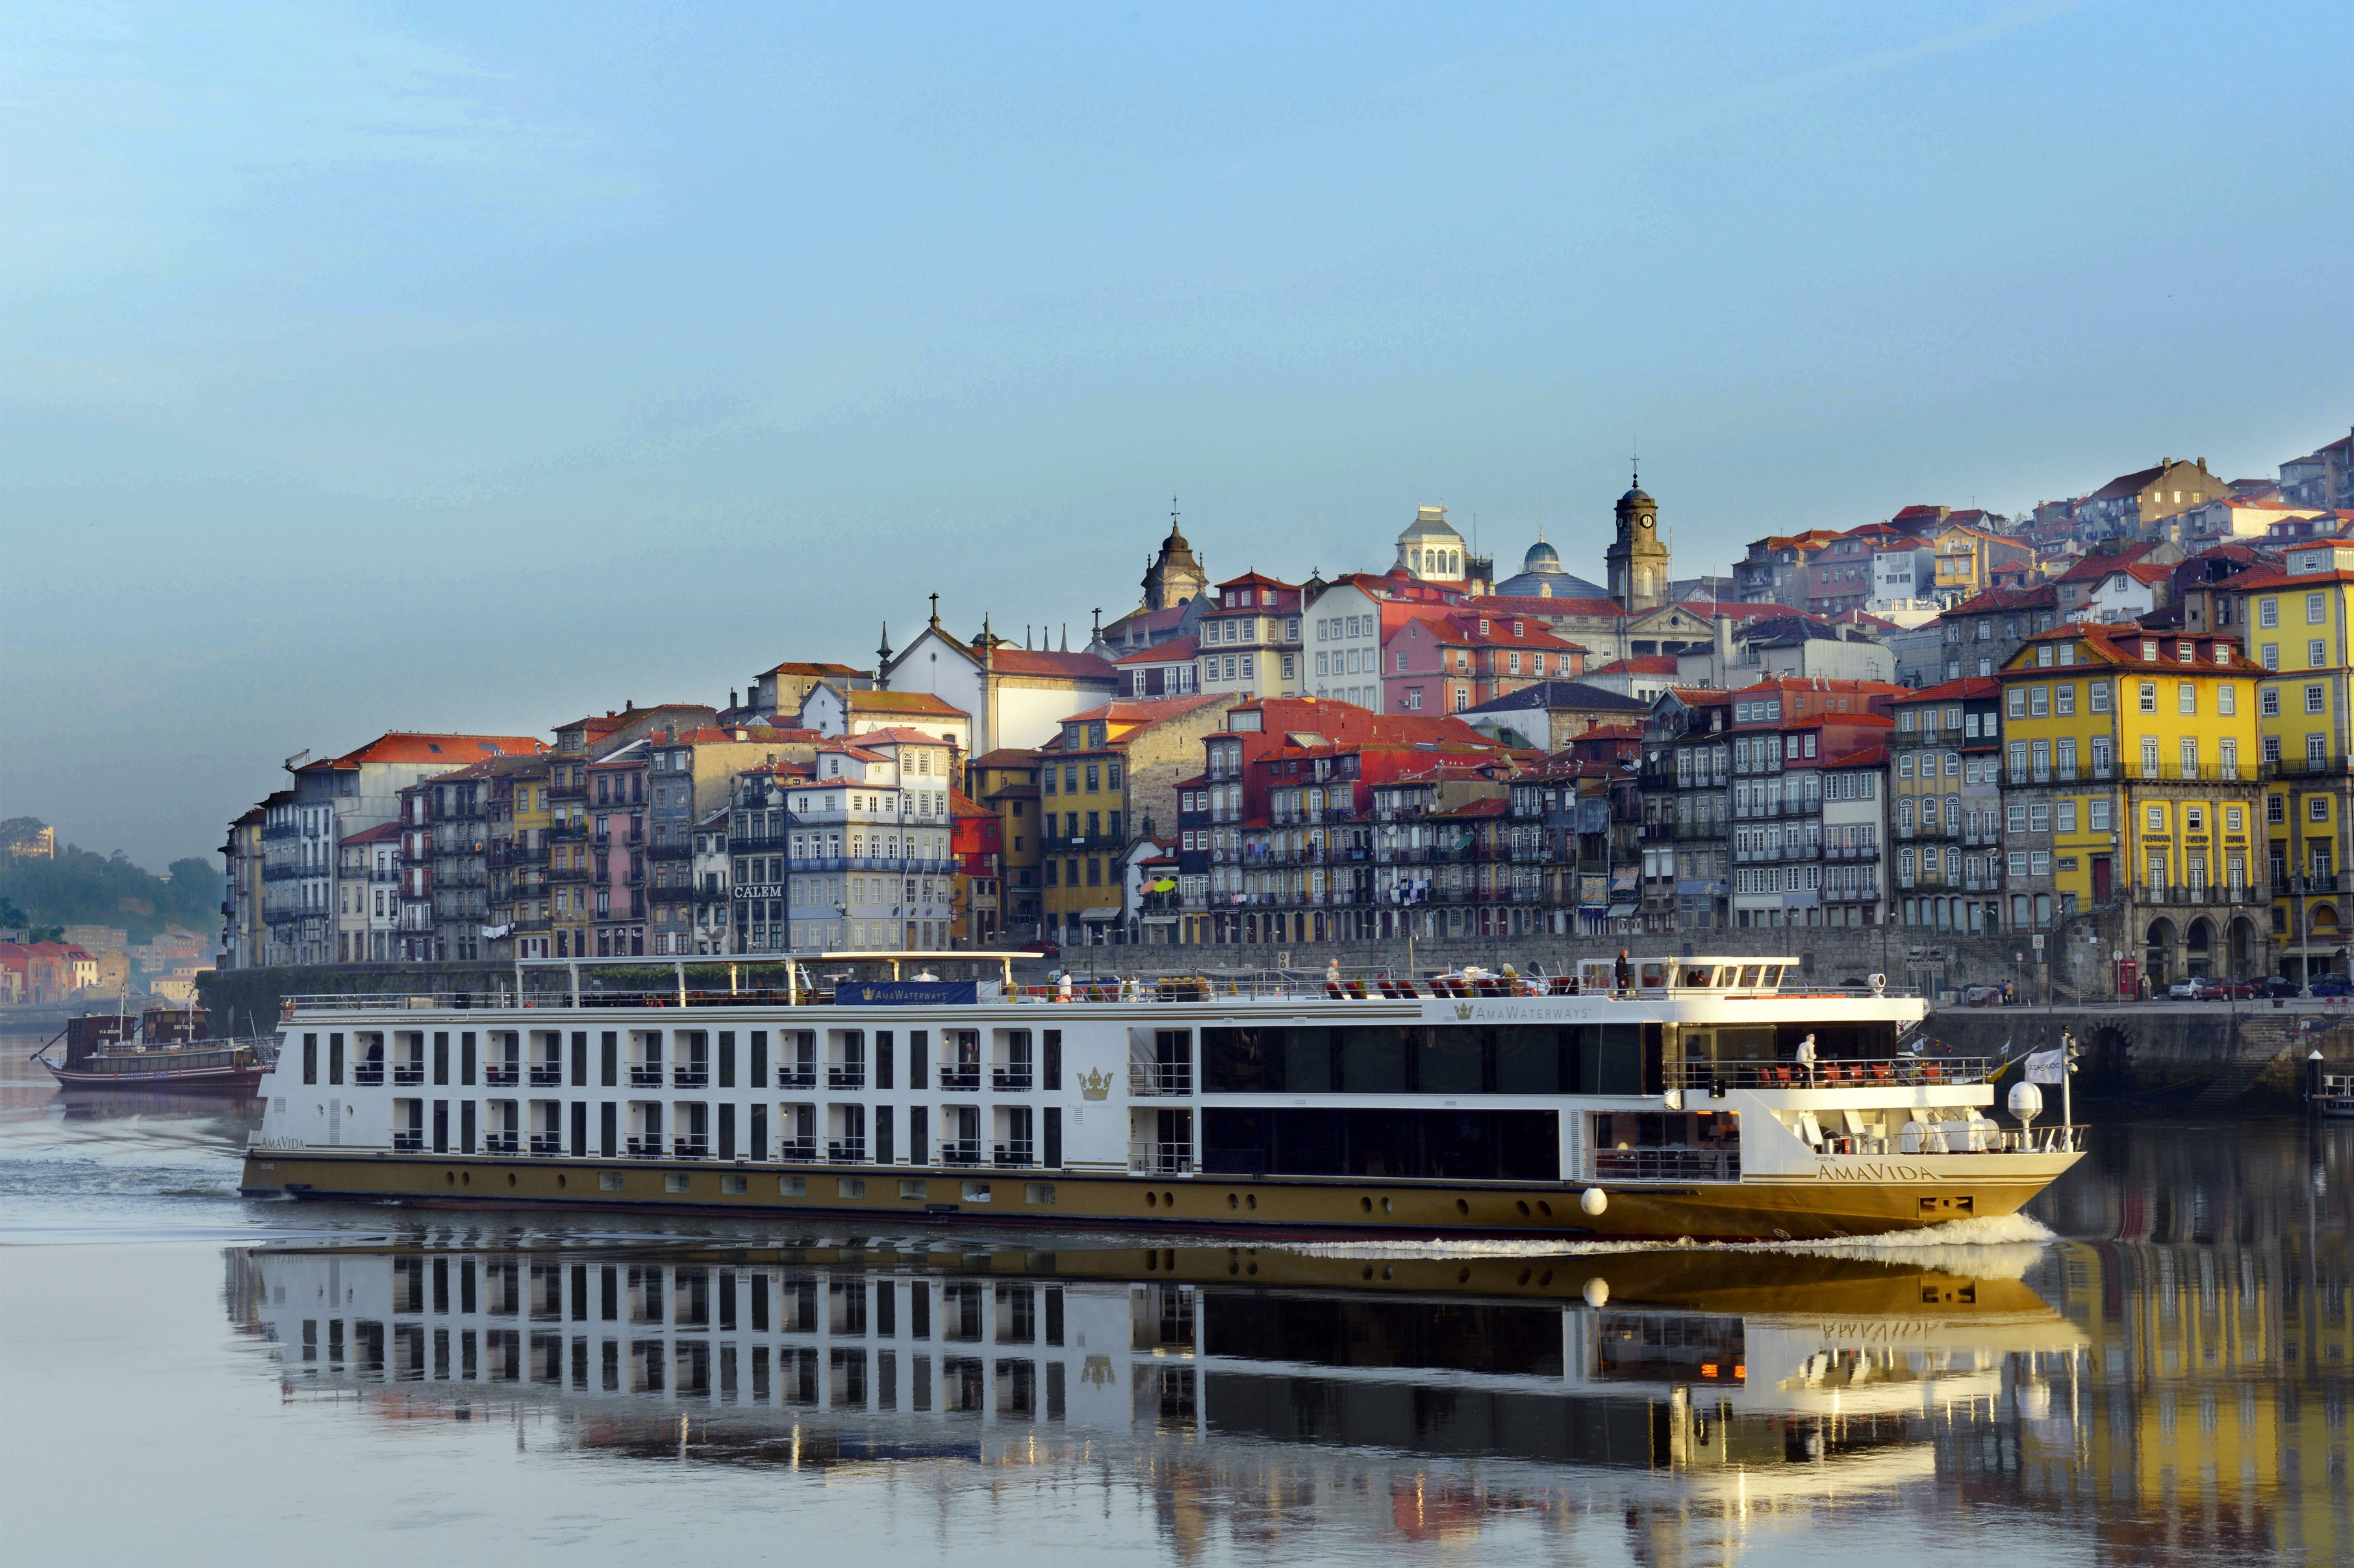 AmaVida on the Douro river, Porto